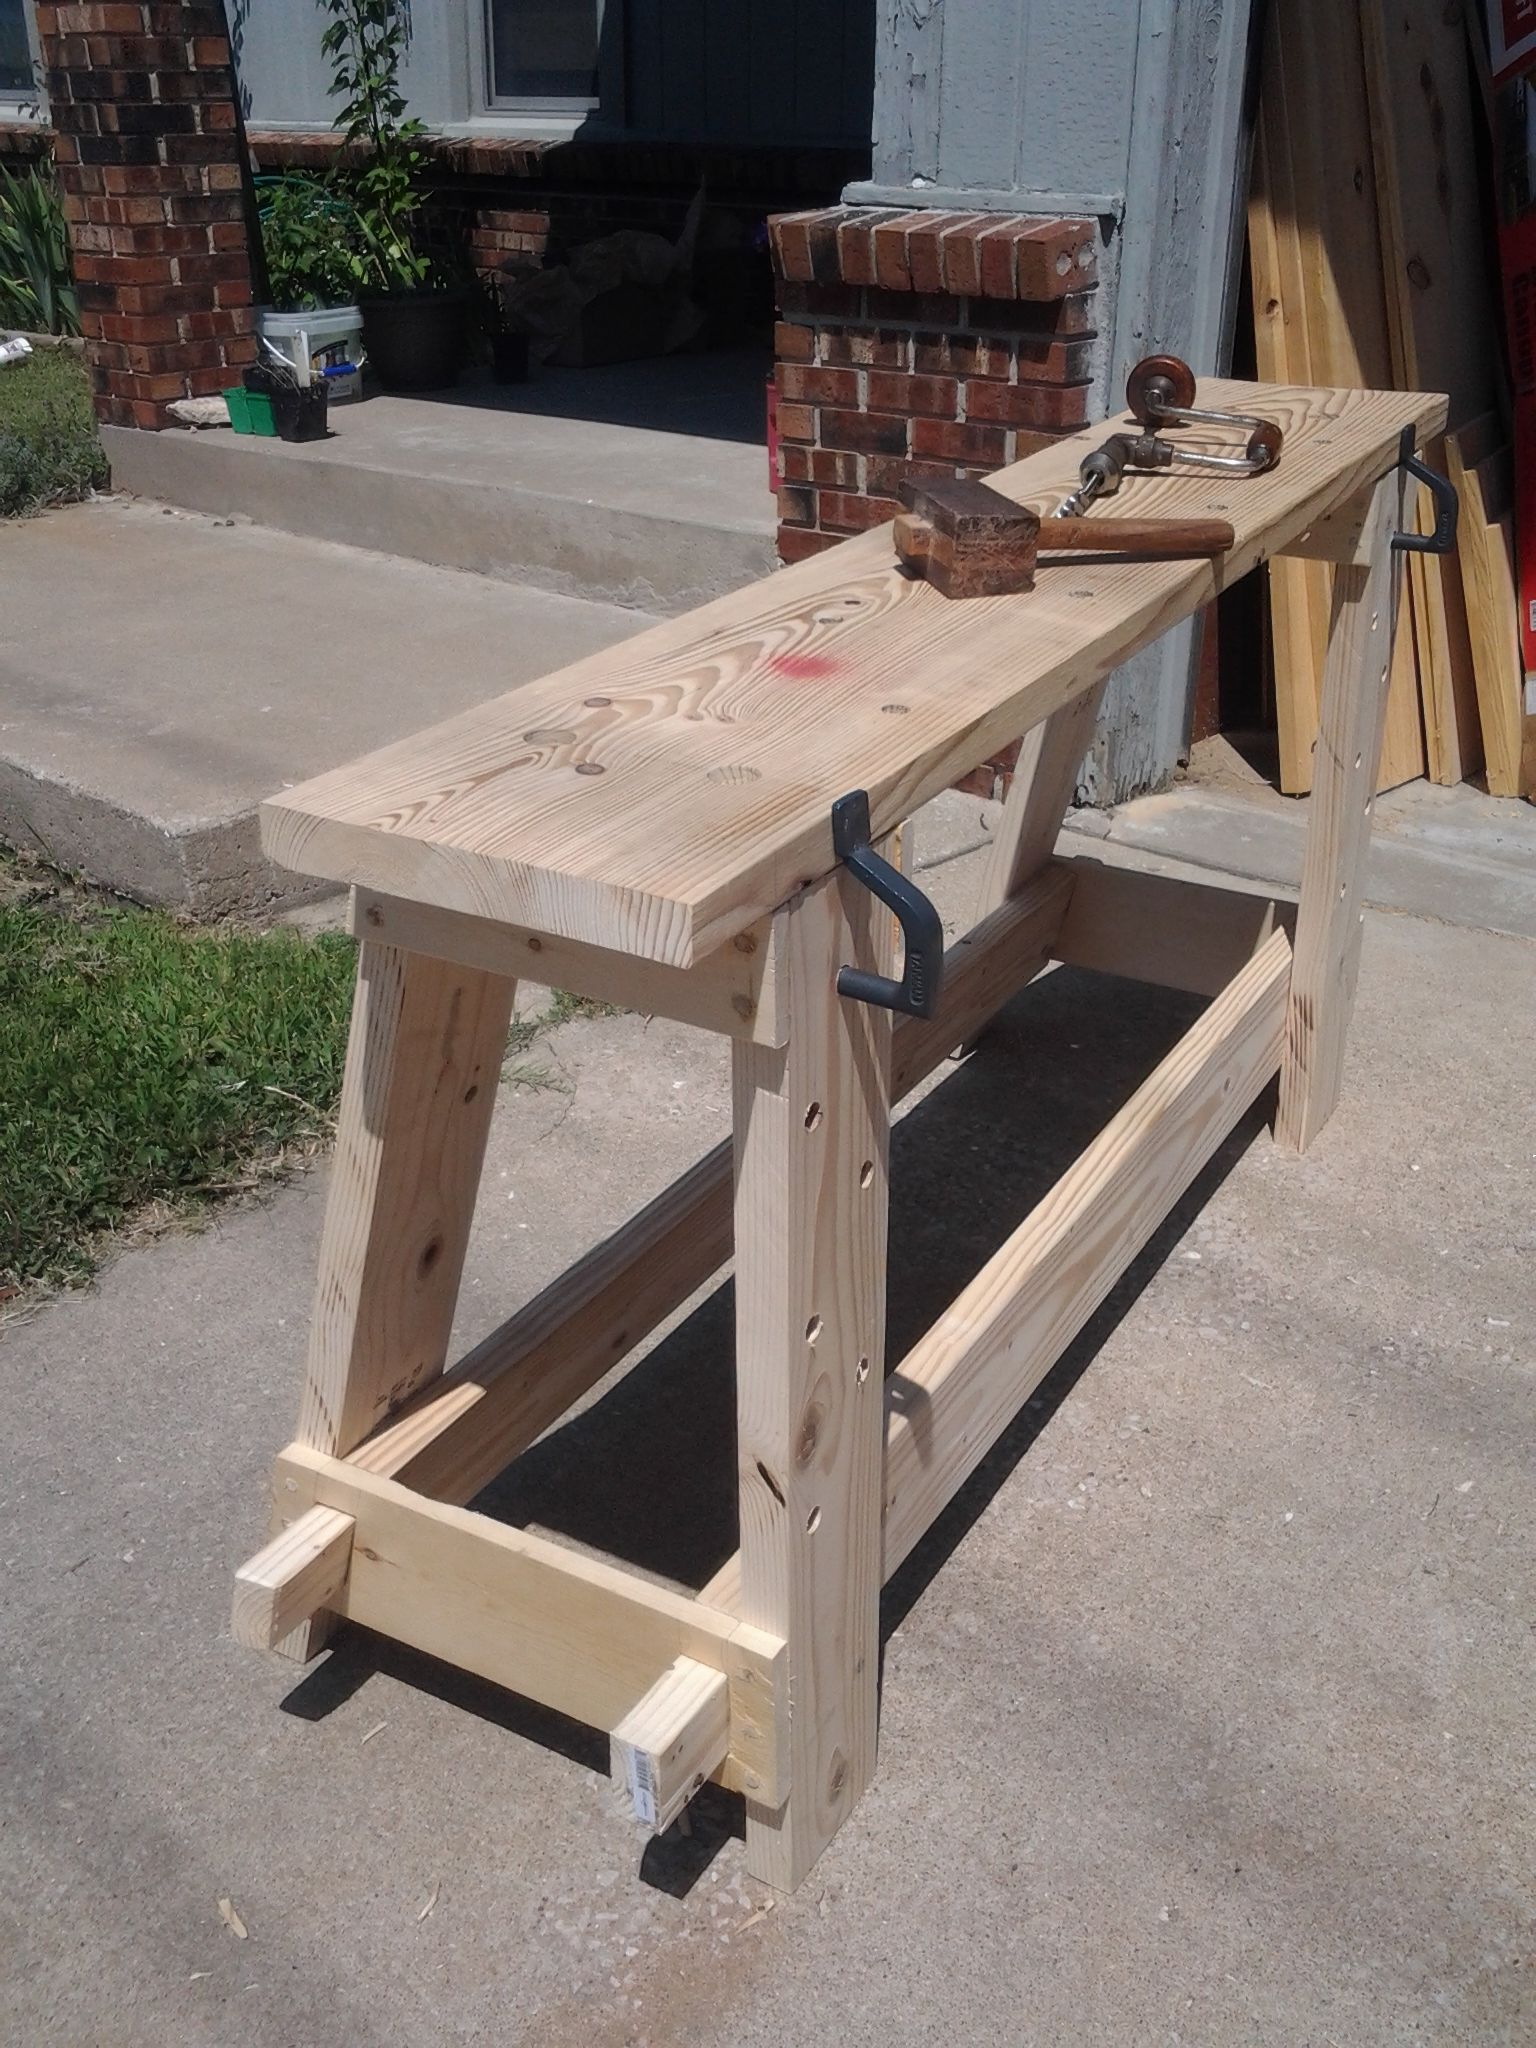 My Portable Workbench It Disassembles Into The Top Two Leg Assemblies And The Two Stretchers Portable Workbench Woodworking Bench Plans Woodworking Bench